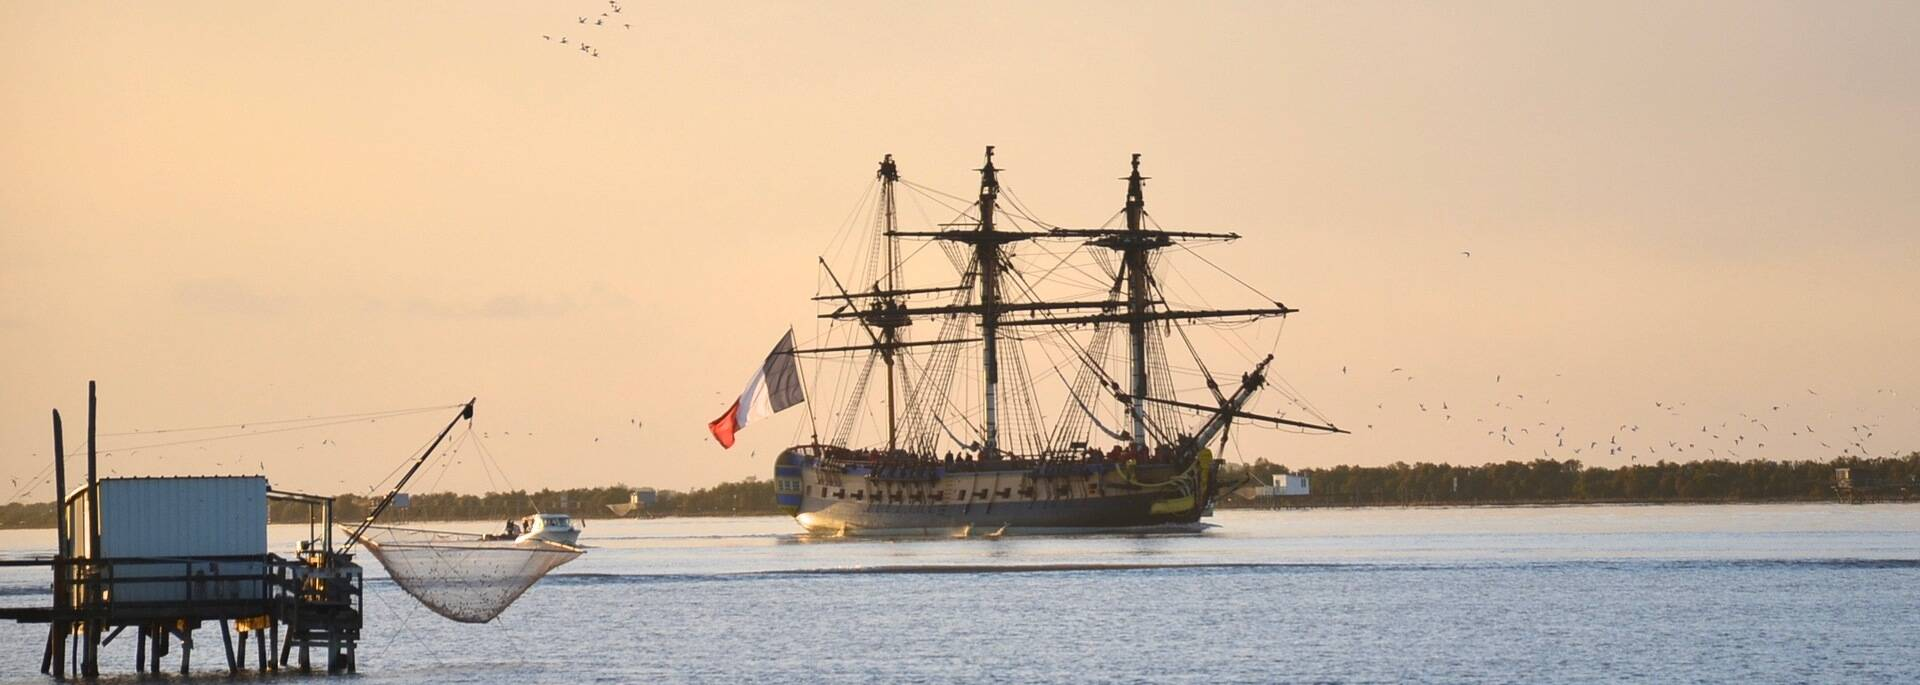 The frigate Hermione at the estuary of the Charente river - © Samuel Courtois